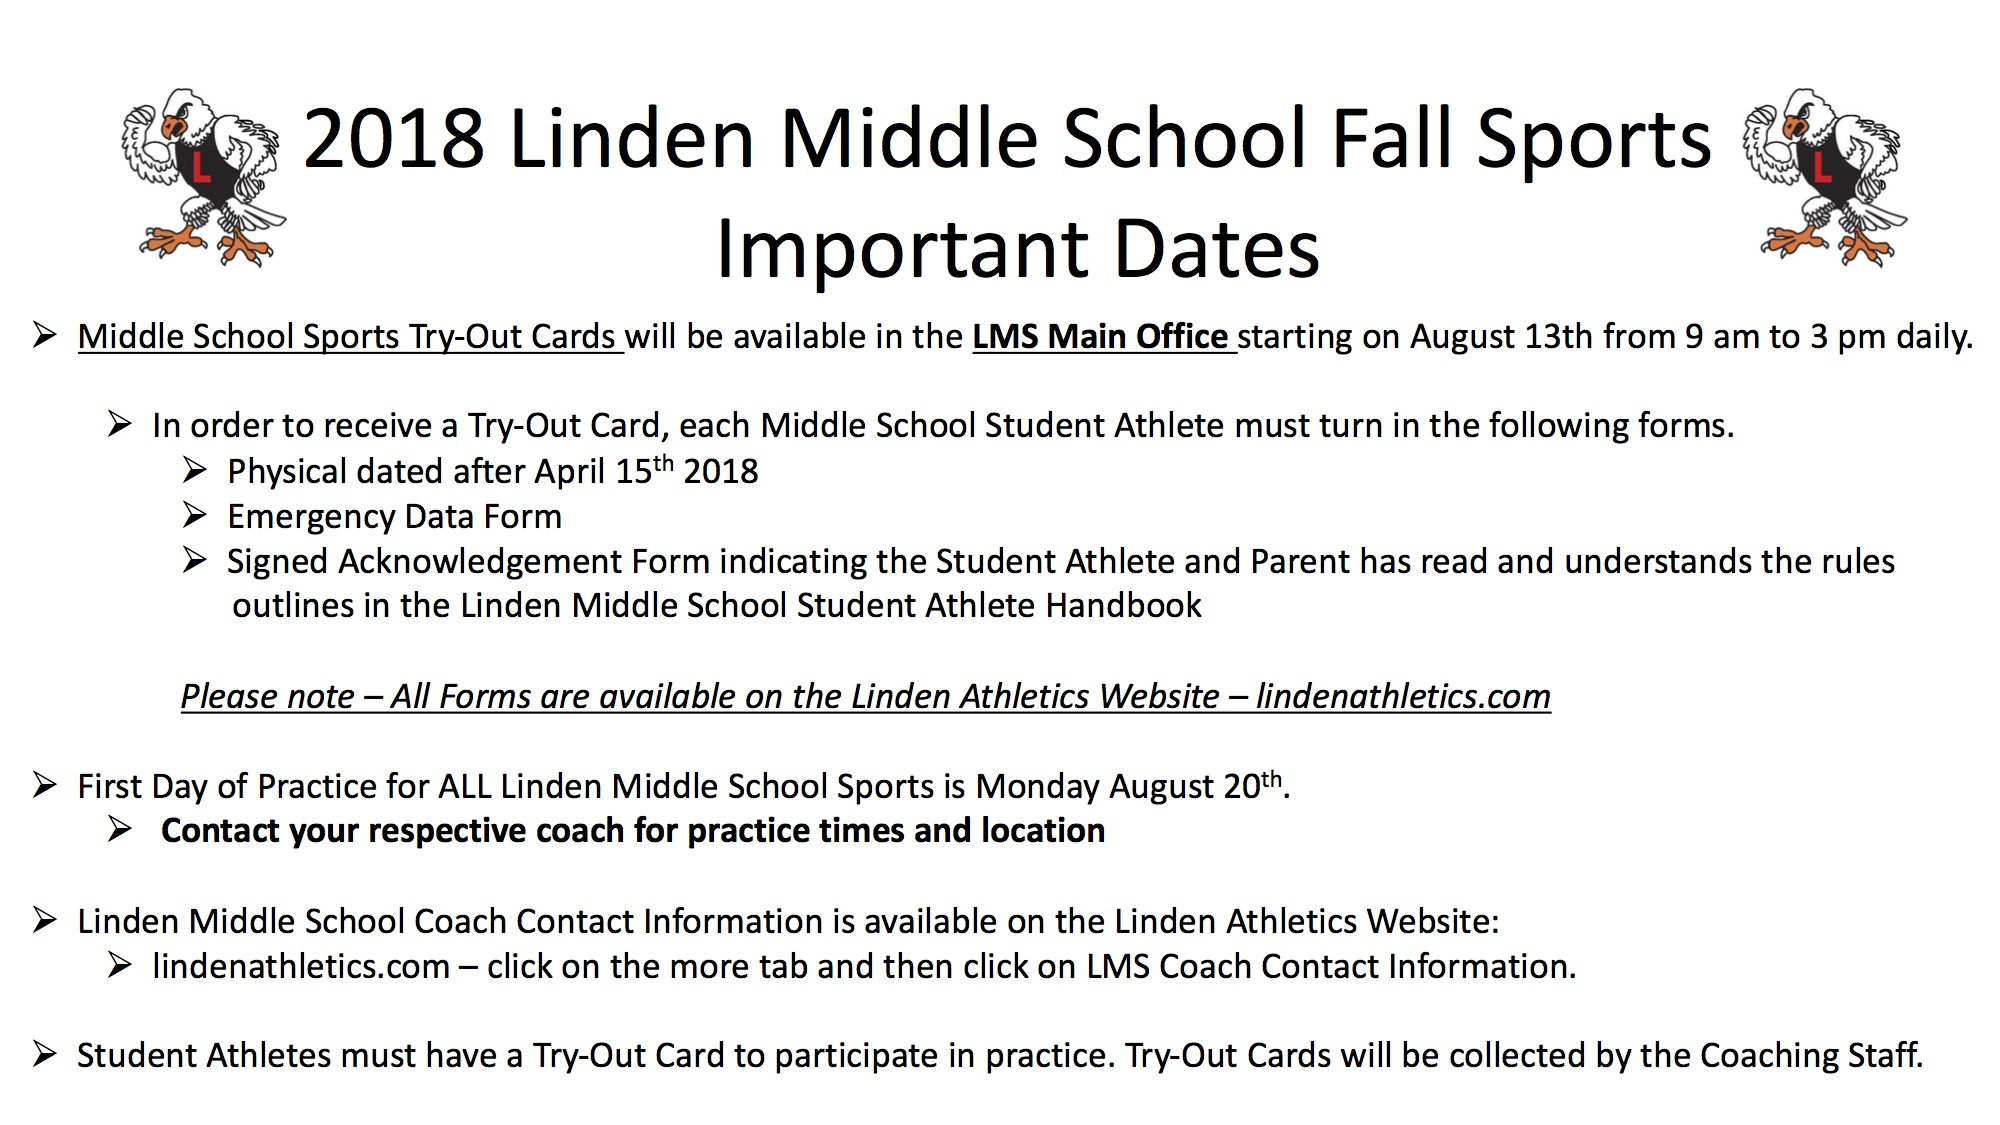 2018 Linden Middle School Fall Sports Important Information